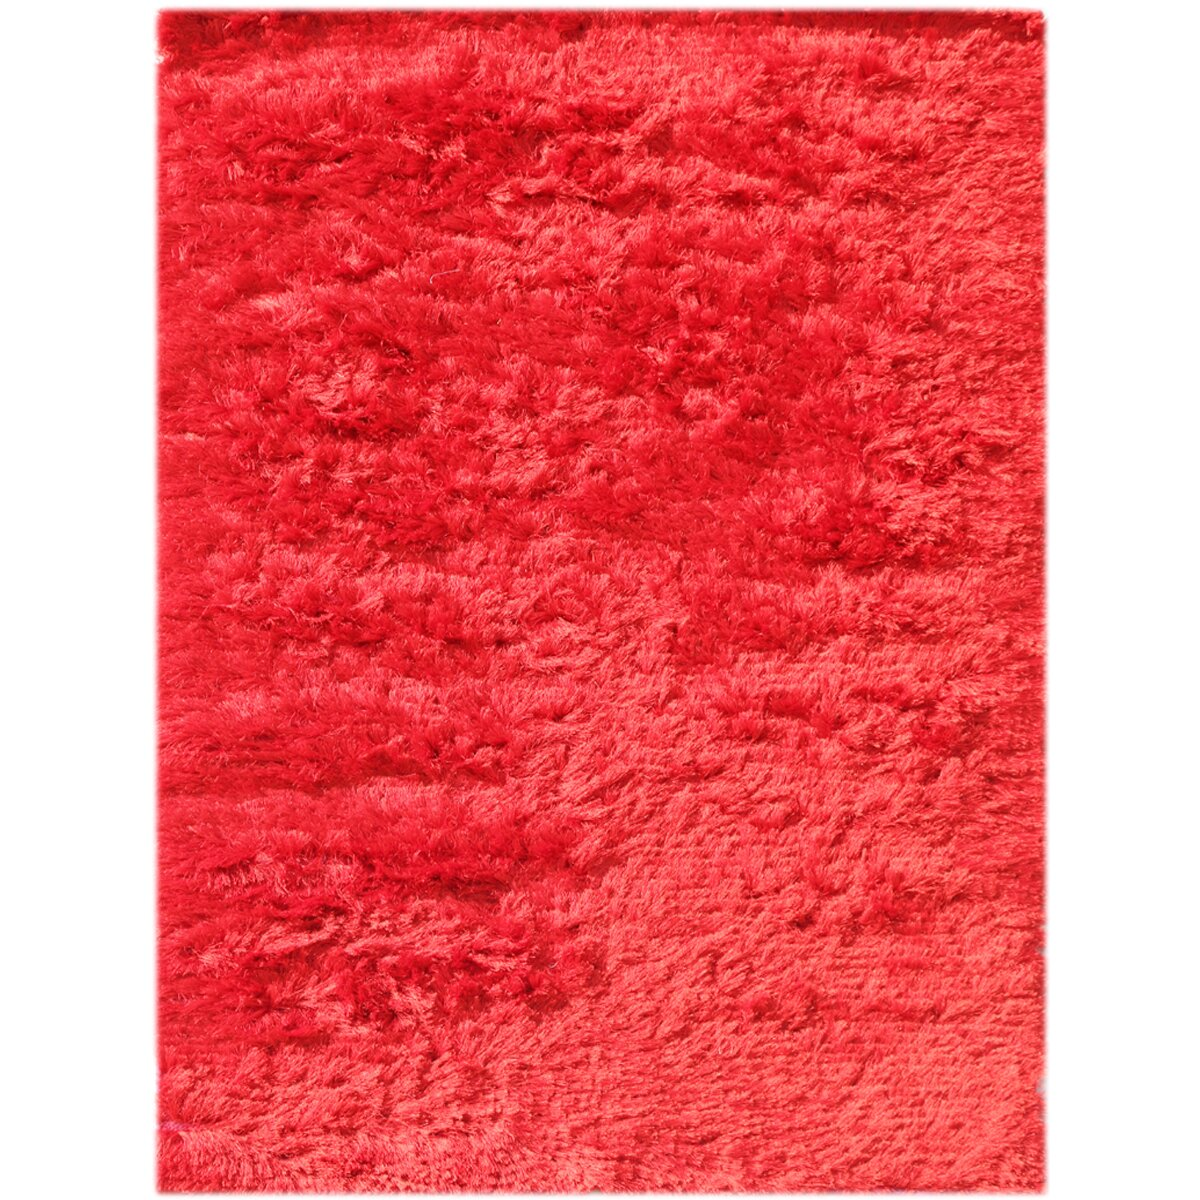 AMER Rugs Elements Neon Red Area Rug & Reviews